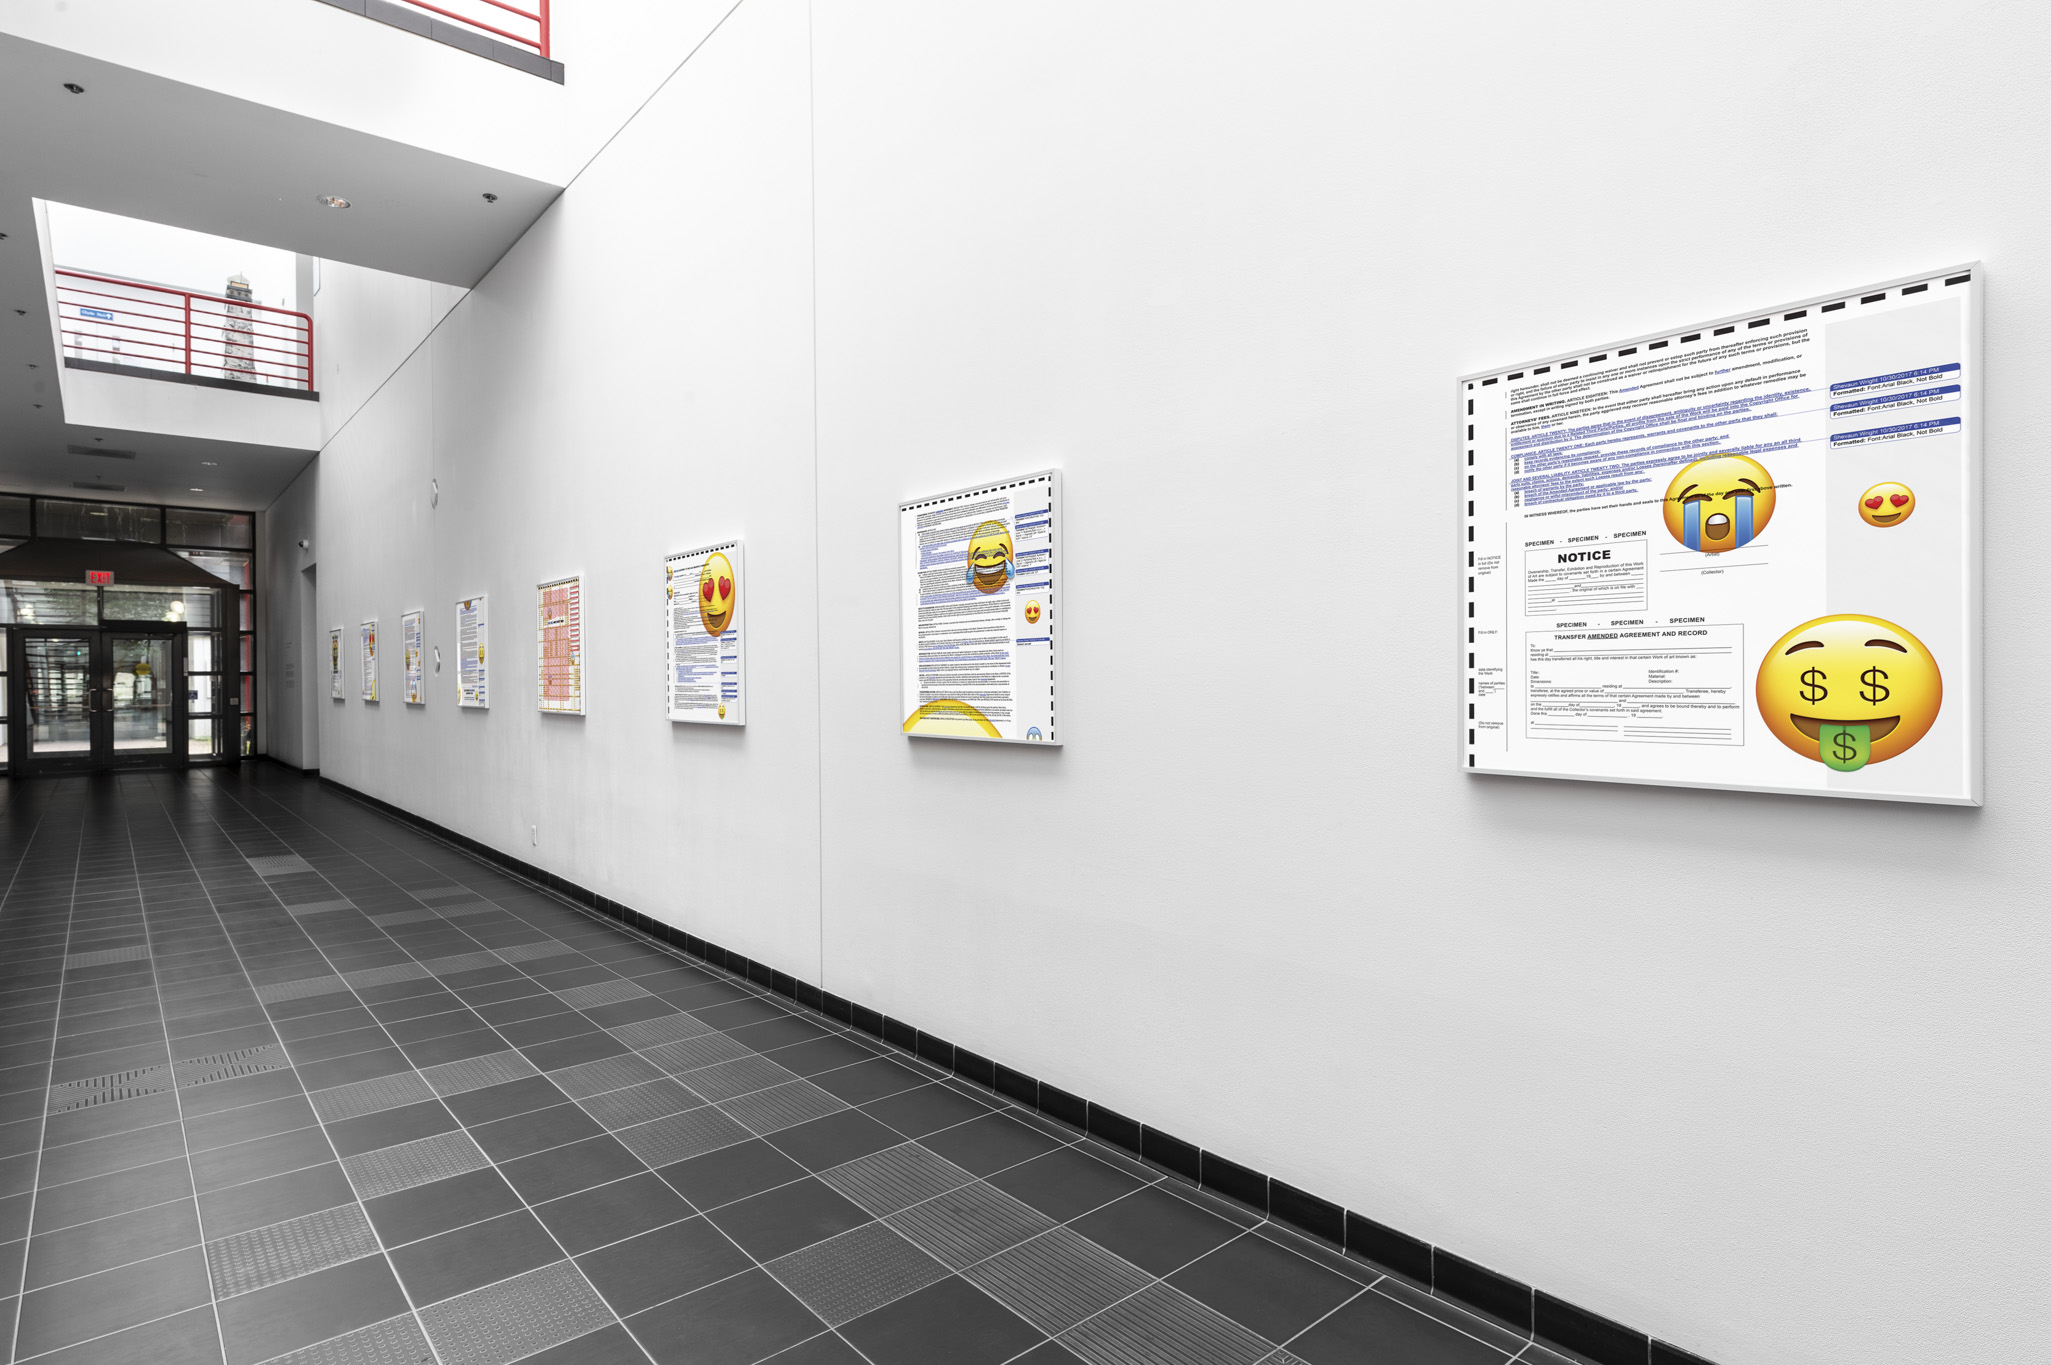 Eight artworks line a white hallway with black tile flooring. Each artwork is hung in a white frame and is a document with a variety of emojis overlaying the text.